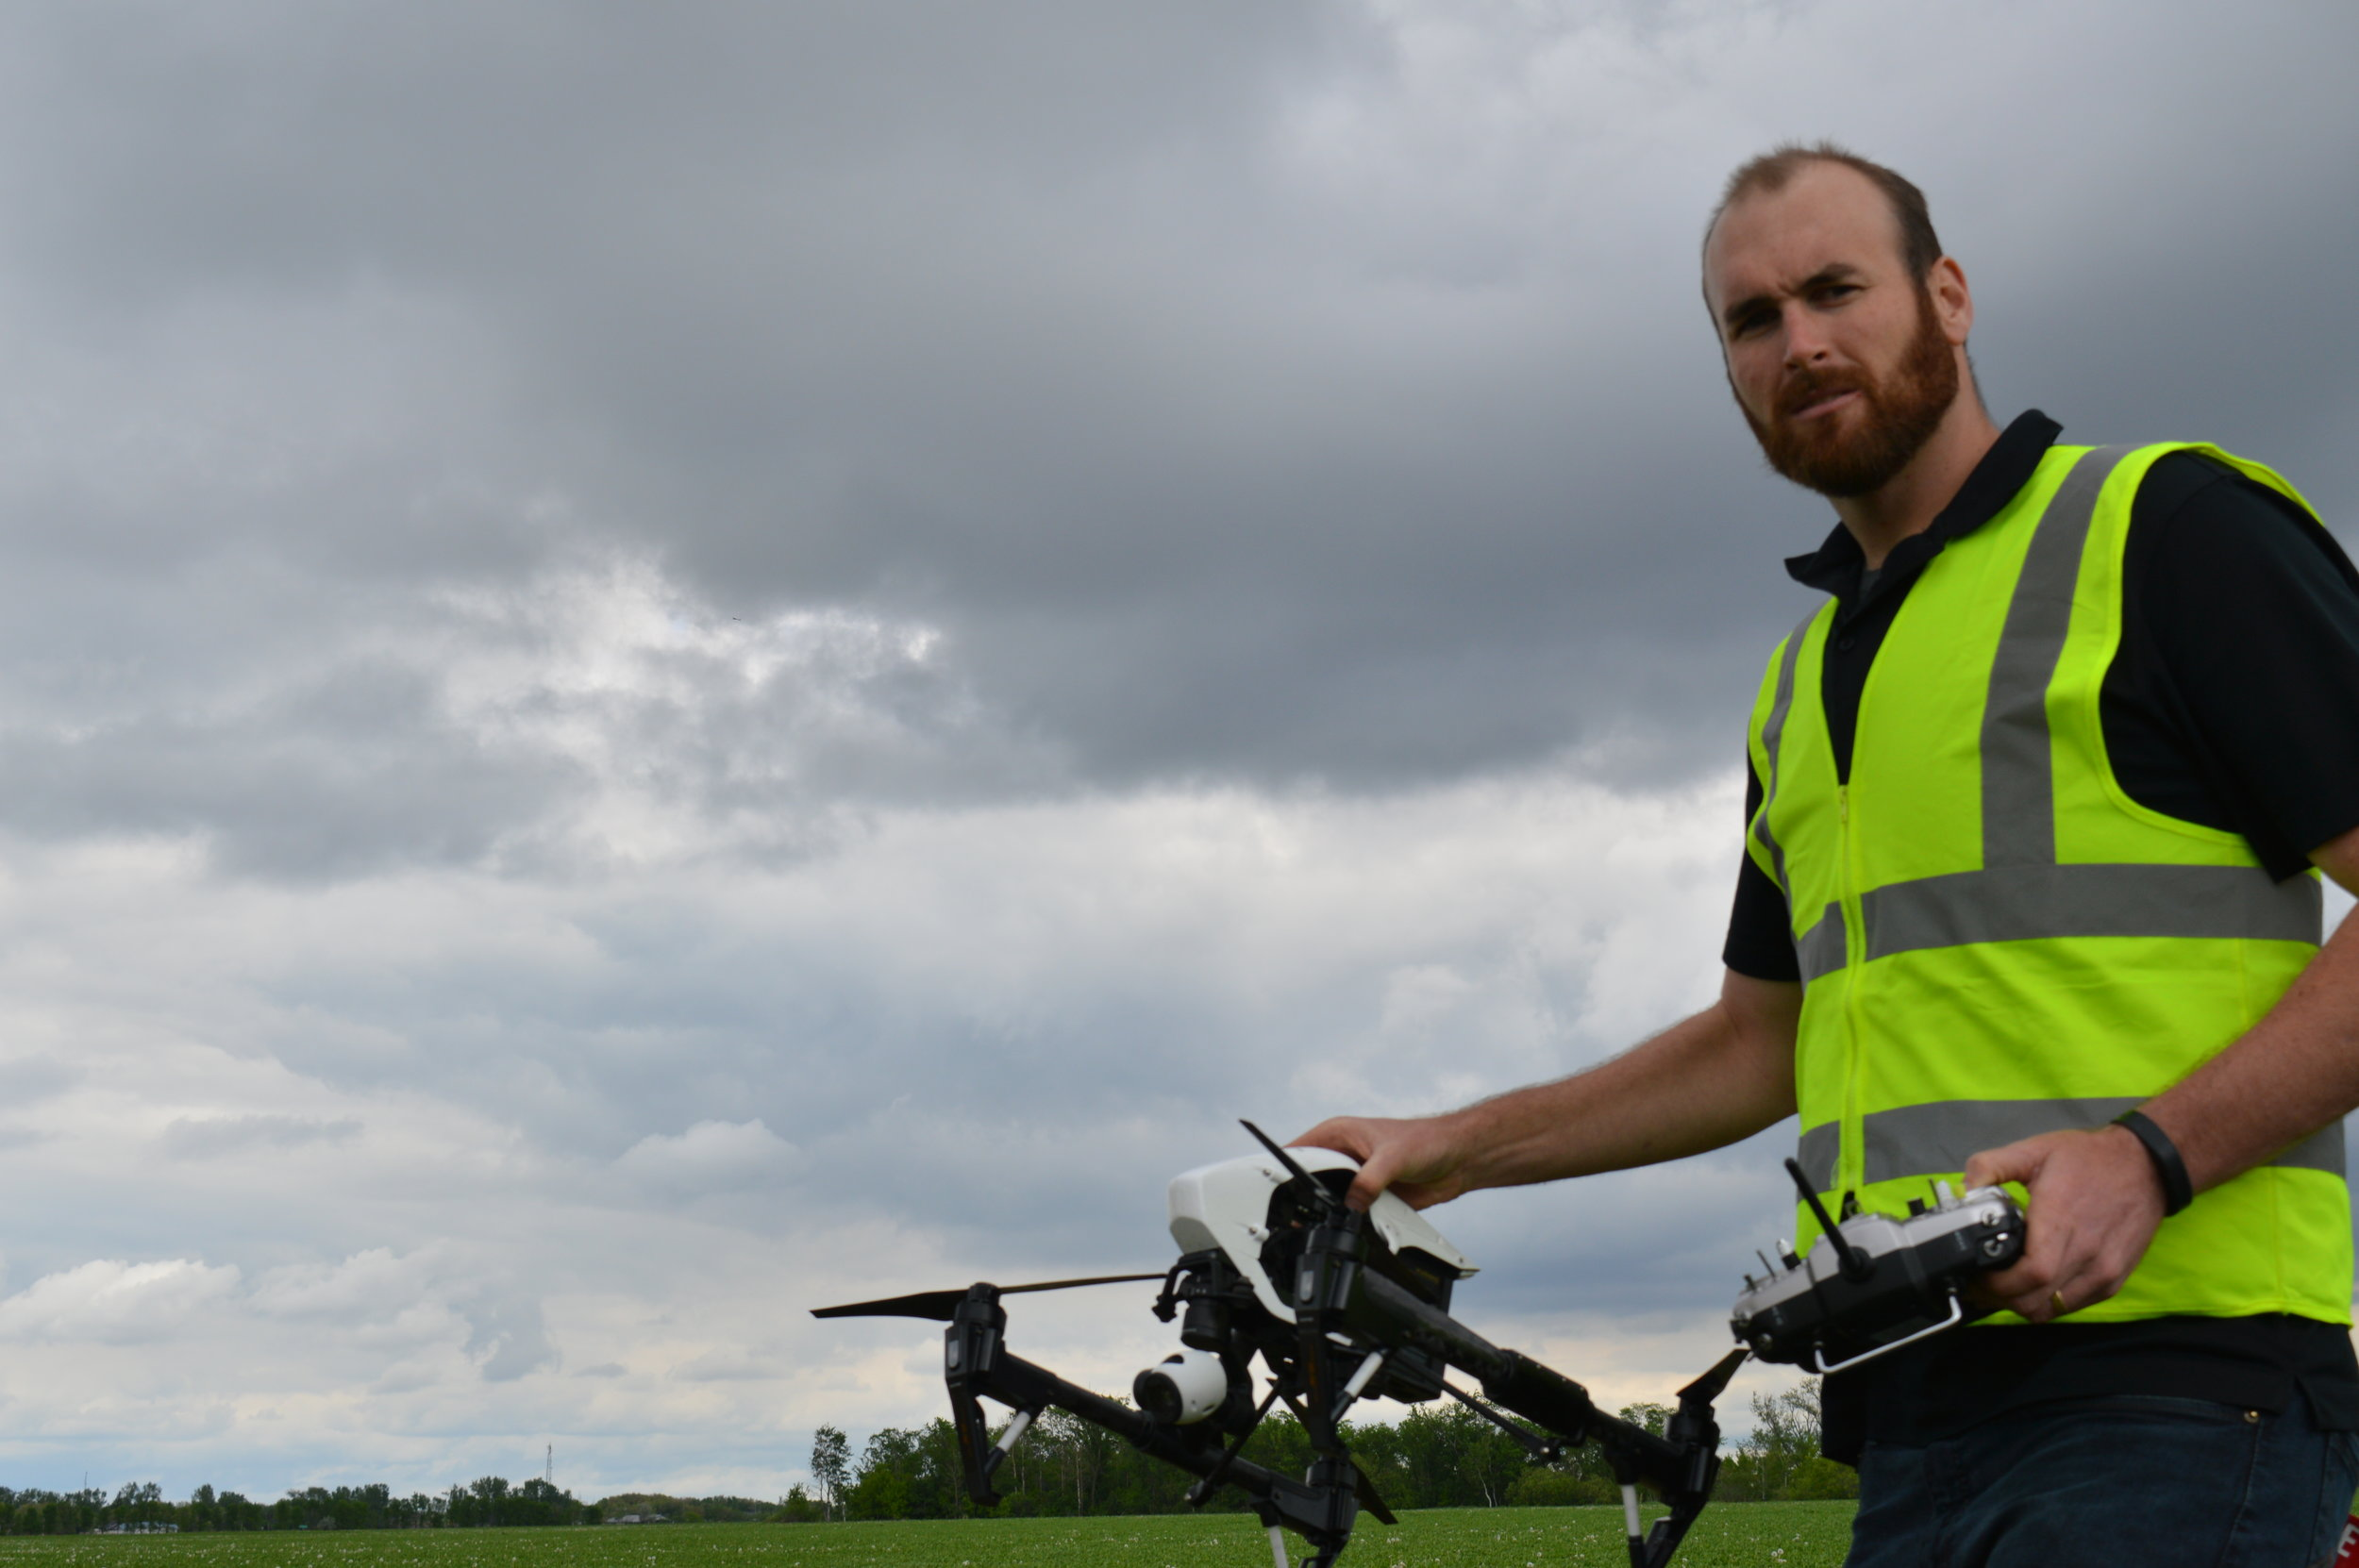 Matthew Johnson, President of M3 Aerial Productions with the DJI Inspire, checking out some alfalfa in Southern Manitoba for the Manitoba Forage and Grassland Association's Green Gold Program.